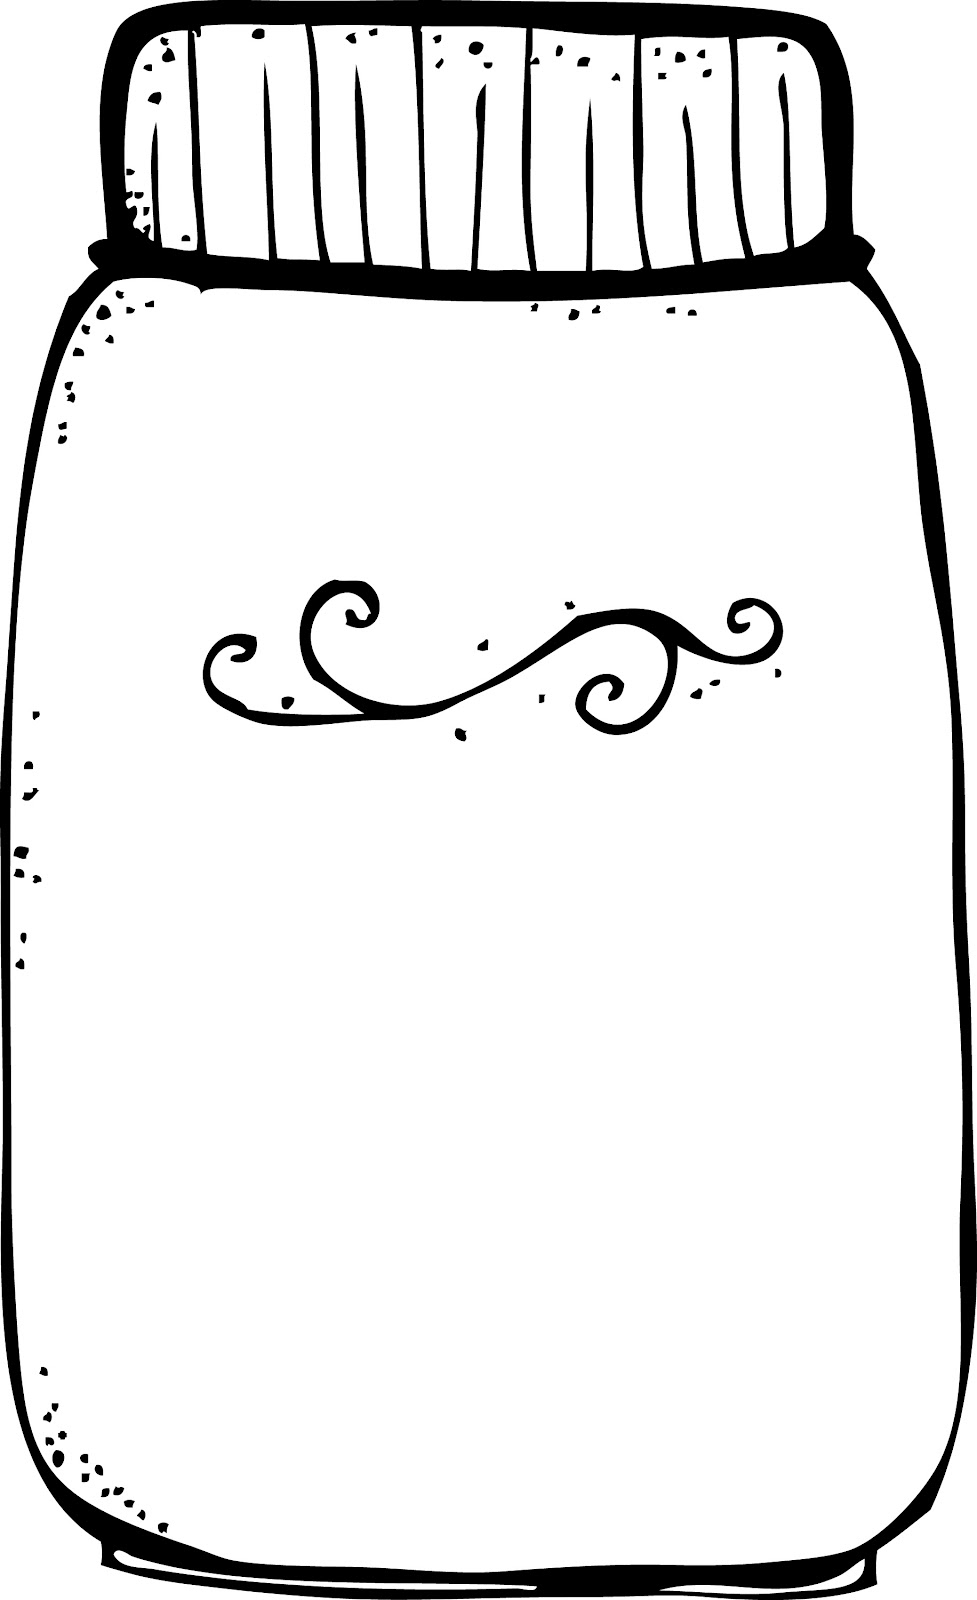 Cookie jar clipart free download clip art on 2.